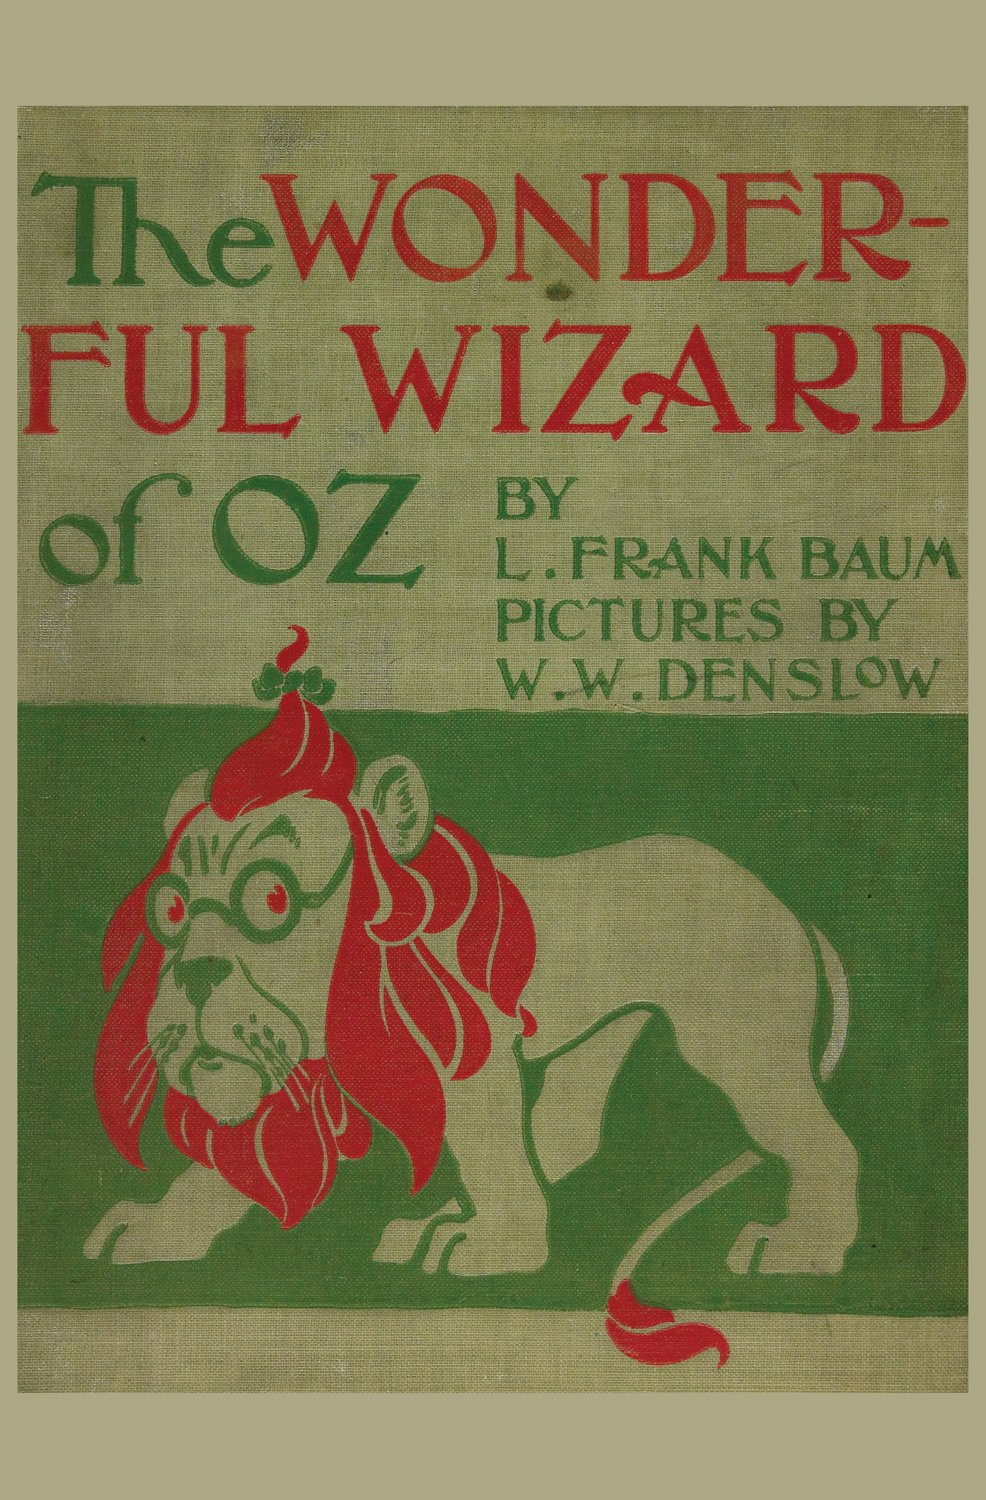 JP London Mural Vintage Wizard of Oz at 2 Wide by 3 feet high SPMUR2466 Fully Removable Peel and Stick Wall Art